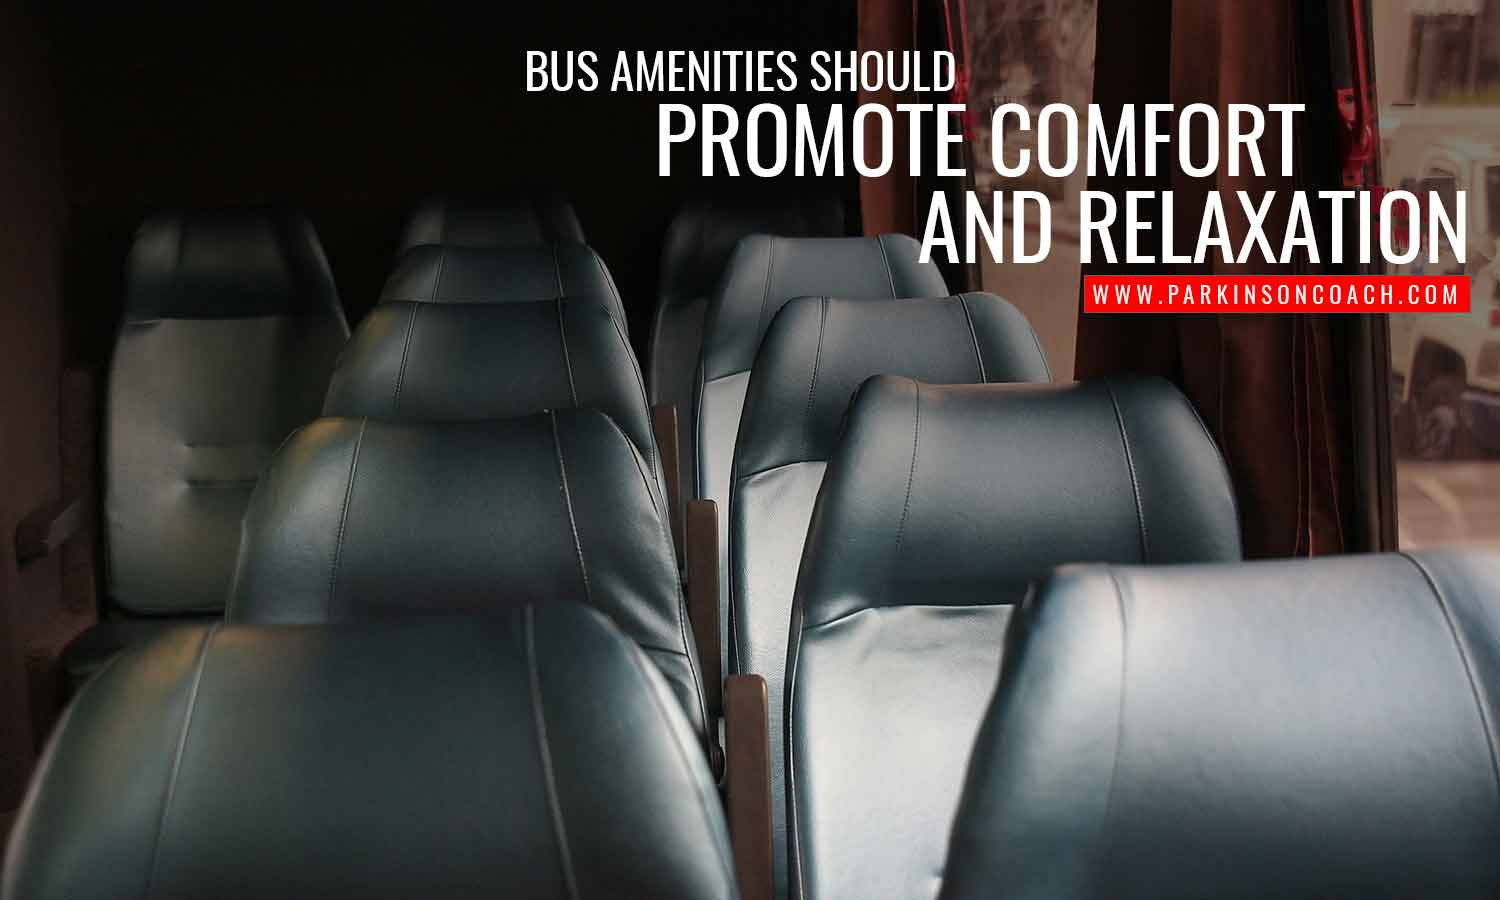 Bus amenities should promote comfort and relaxation